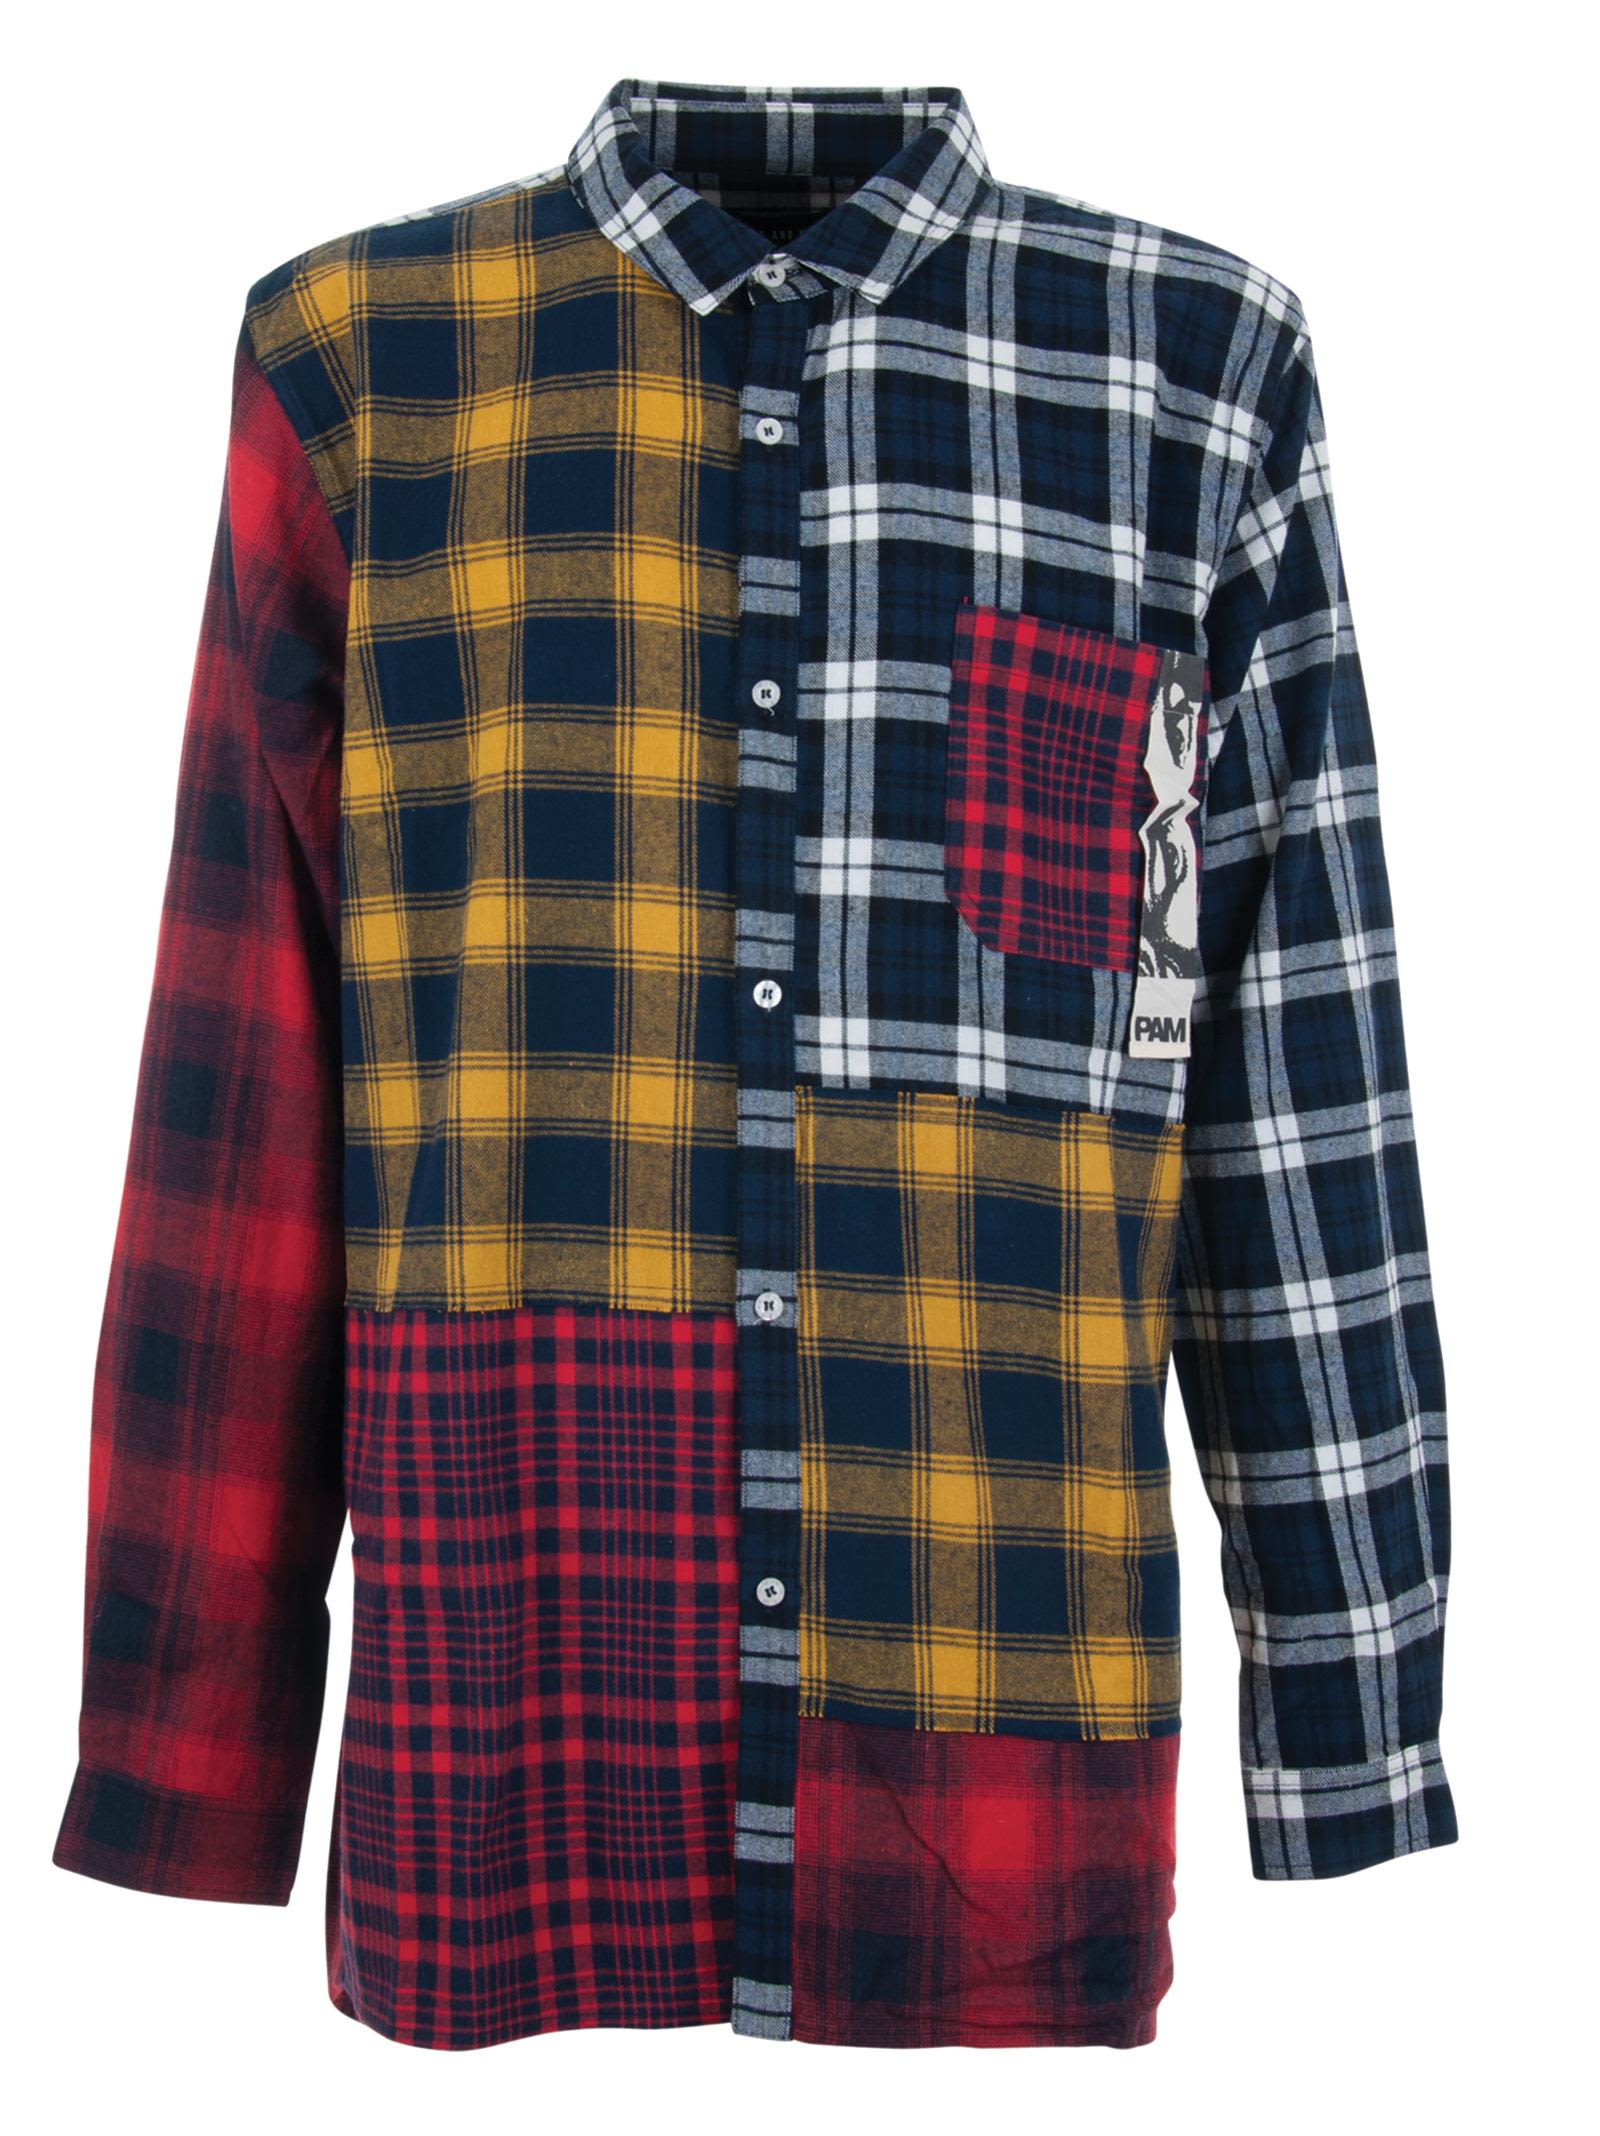 Perks And Mini P.a.m. Axelrod Multi Flannel Shirt